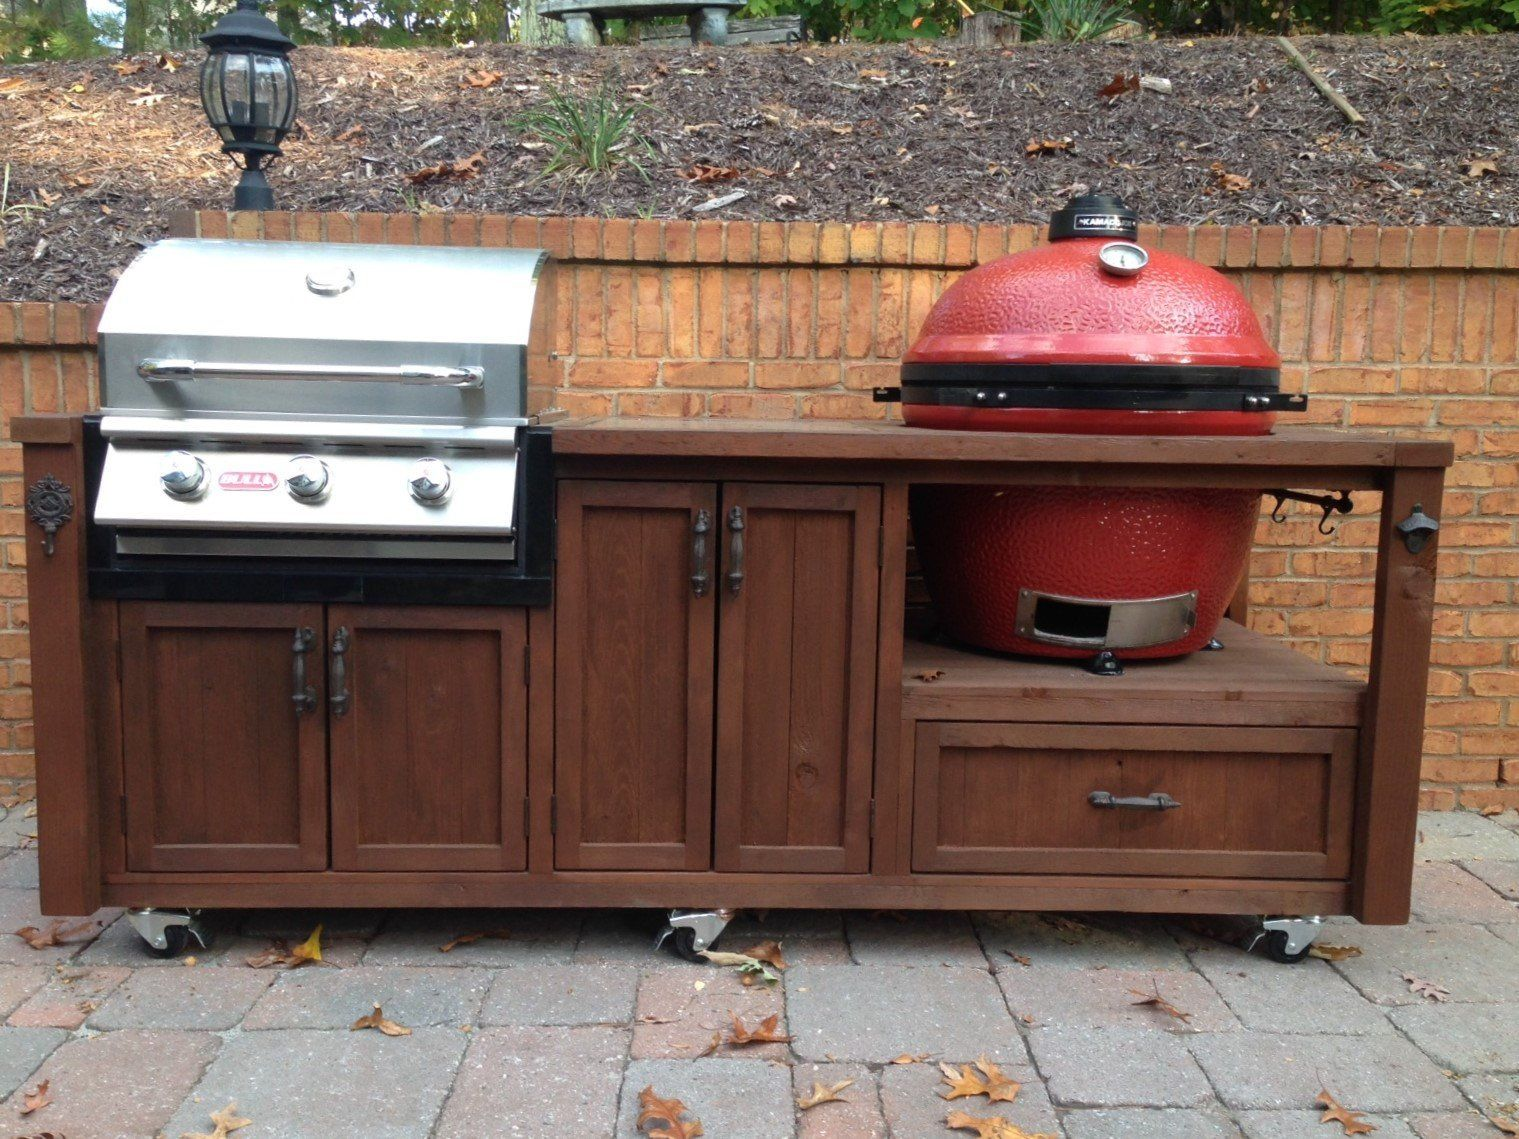 Outdoor Kitchens Mobile Grill Islands Dual Grill Tables Etsy Grill Table Outdoor Kitchen Design Grill Island